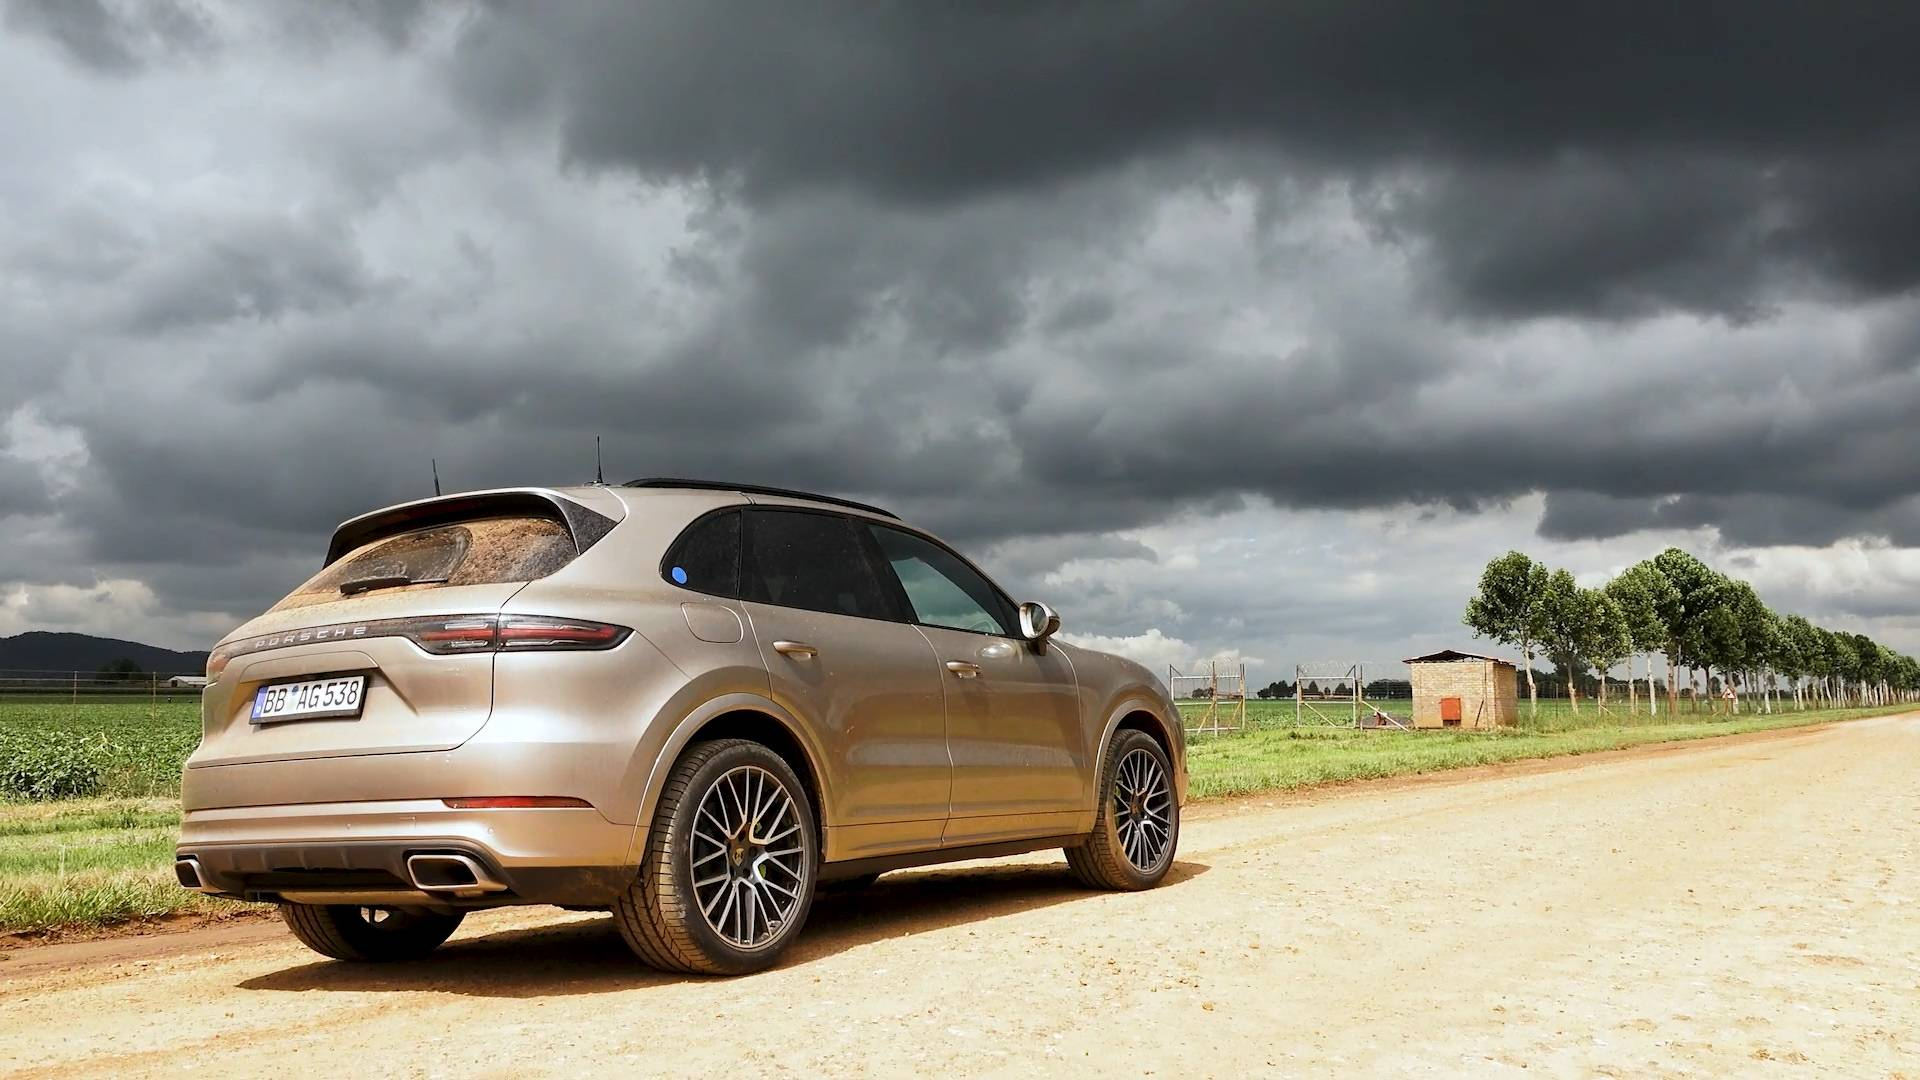 2019 porsche cayenne e-hybrid prepares for debut - autoevolution